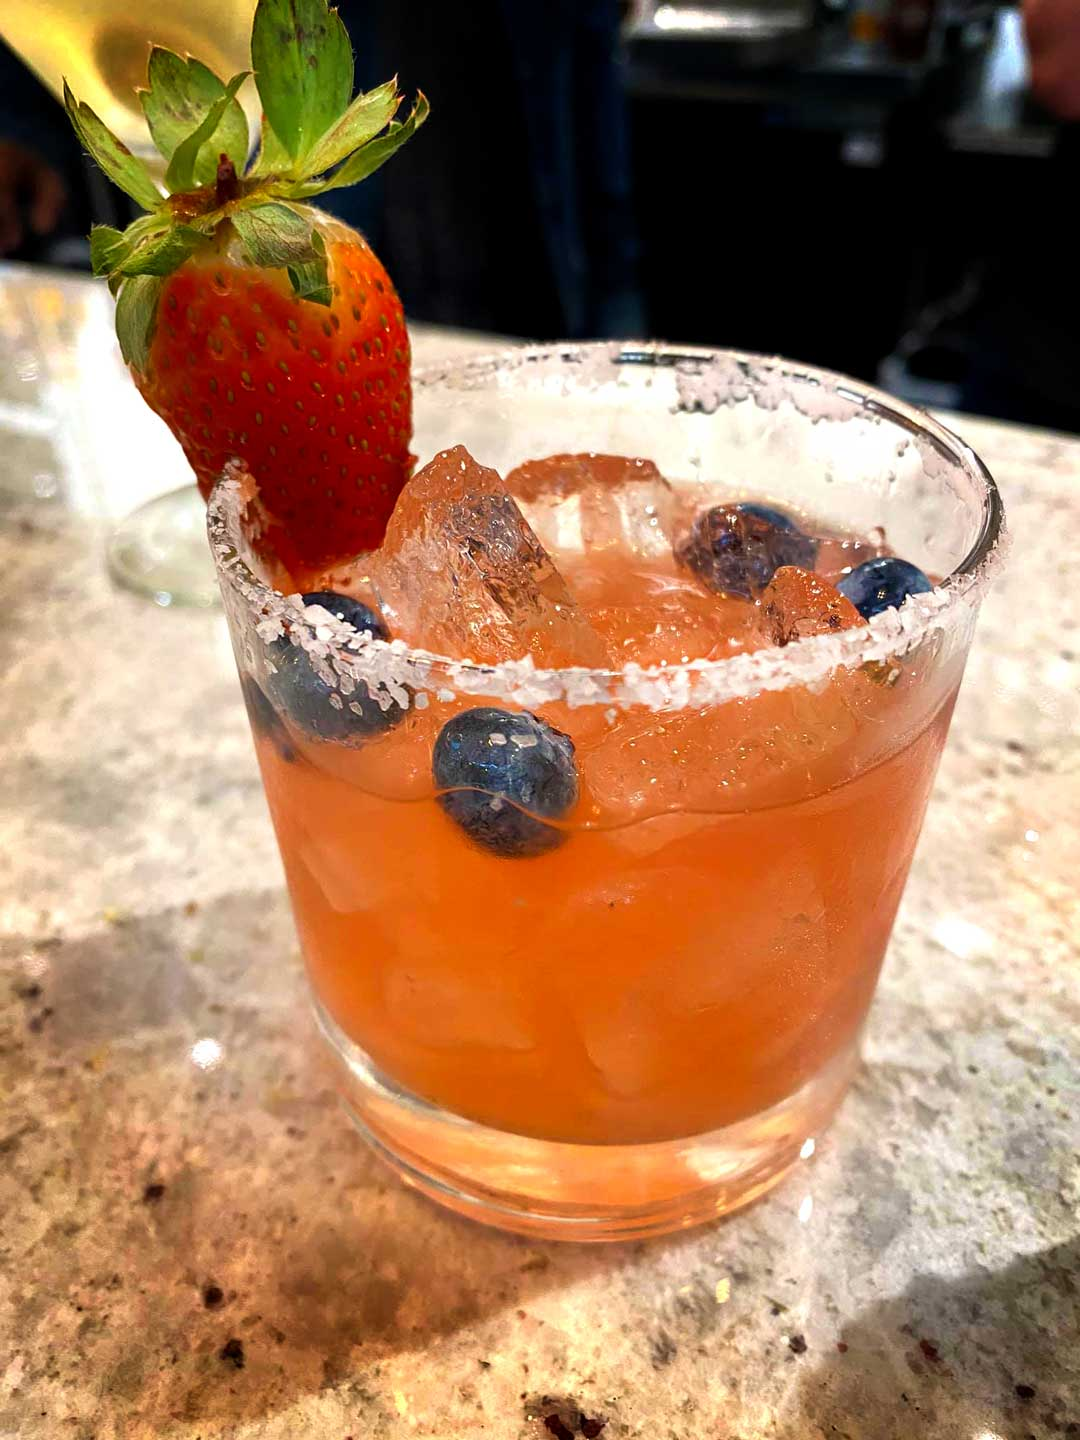 Strawberry Cocktail at 2020 Market